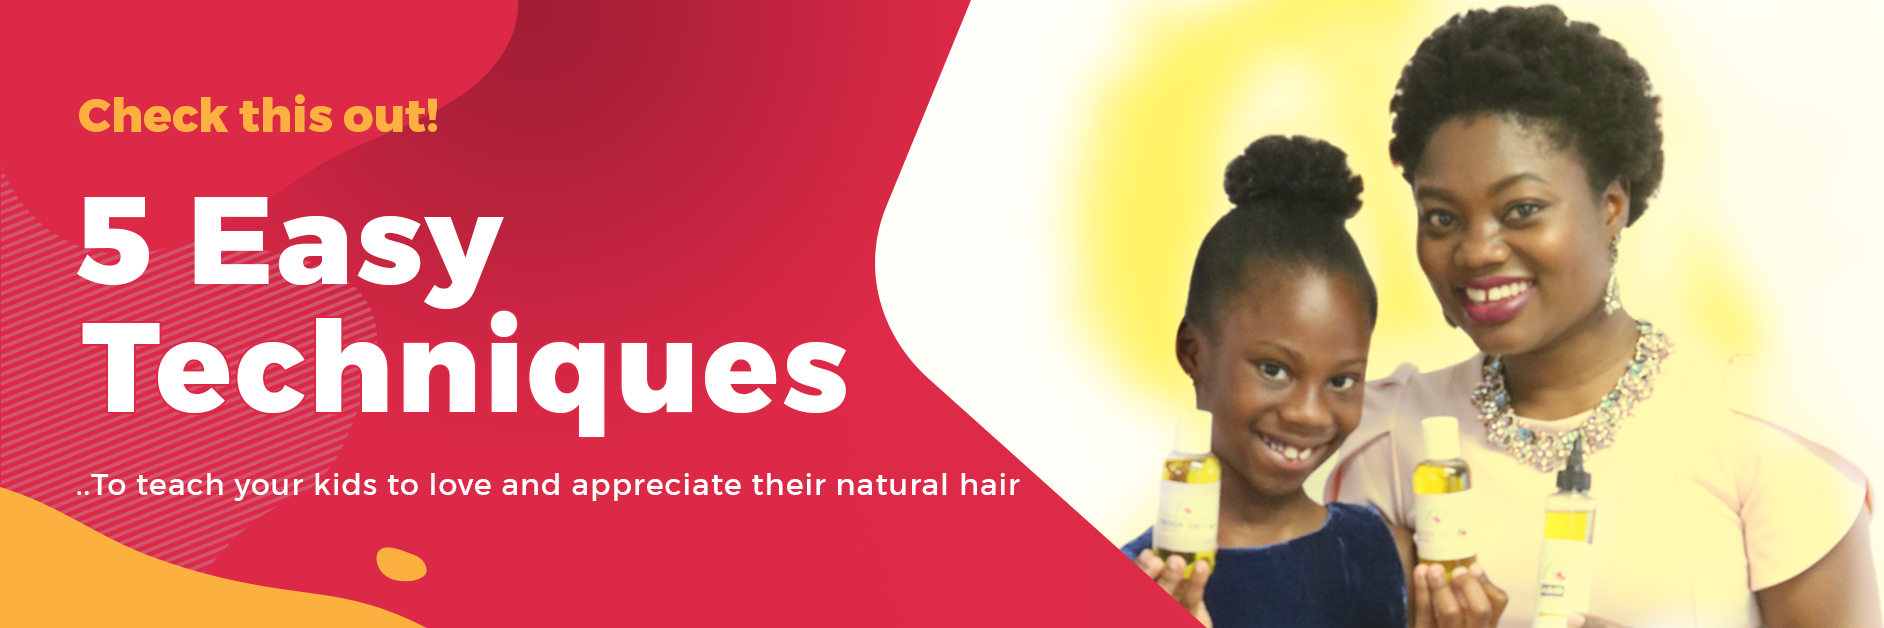 5 easy techniques to teach your kids to love and appreciate their natural hair